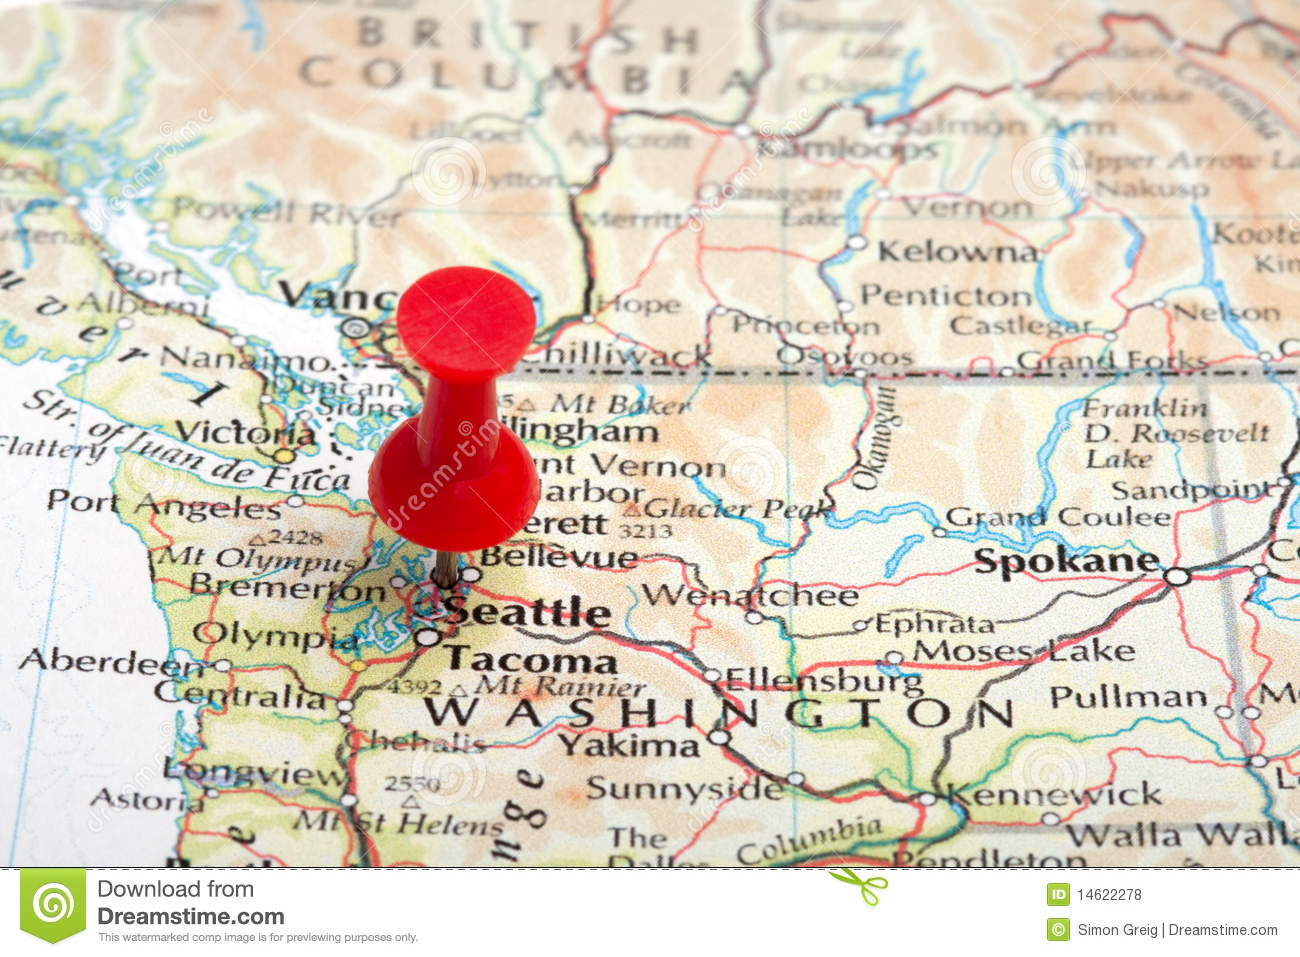 where is seattle in usa map with Royalty Free Stock Photos Seattle Map Pin Image14622278 on T70j Angle Lake Park Seatac Washington additionally La Mejor Ruta Para Hacer Y Recorrer Todo Estados Unidos moreover Onpmap as well 5245299816 also Mount Rainier National Park Washington United States Wallpaper Hd.